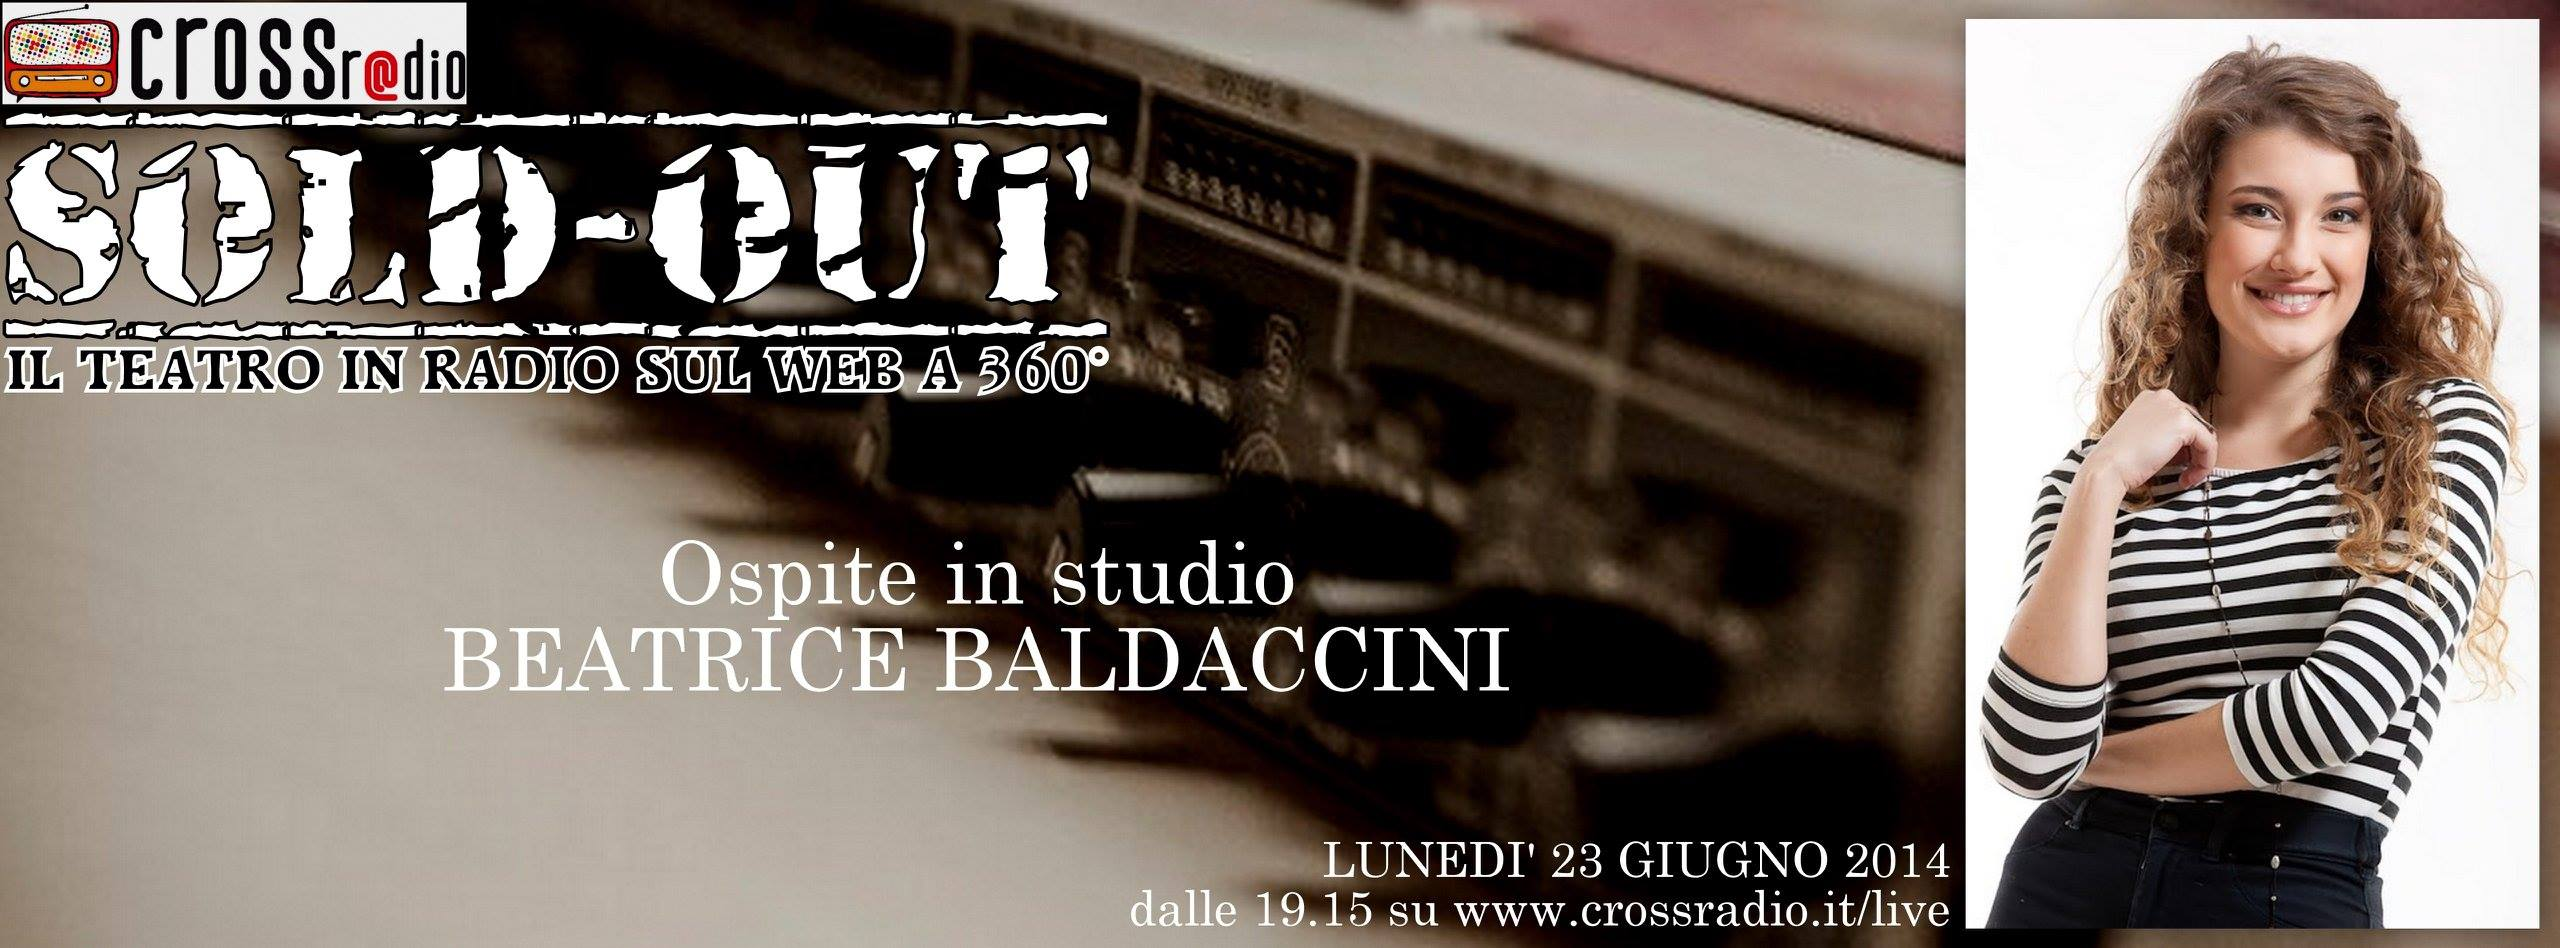 Sold-Out & Beatrice Baldaccini